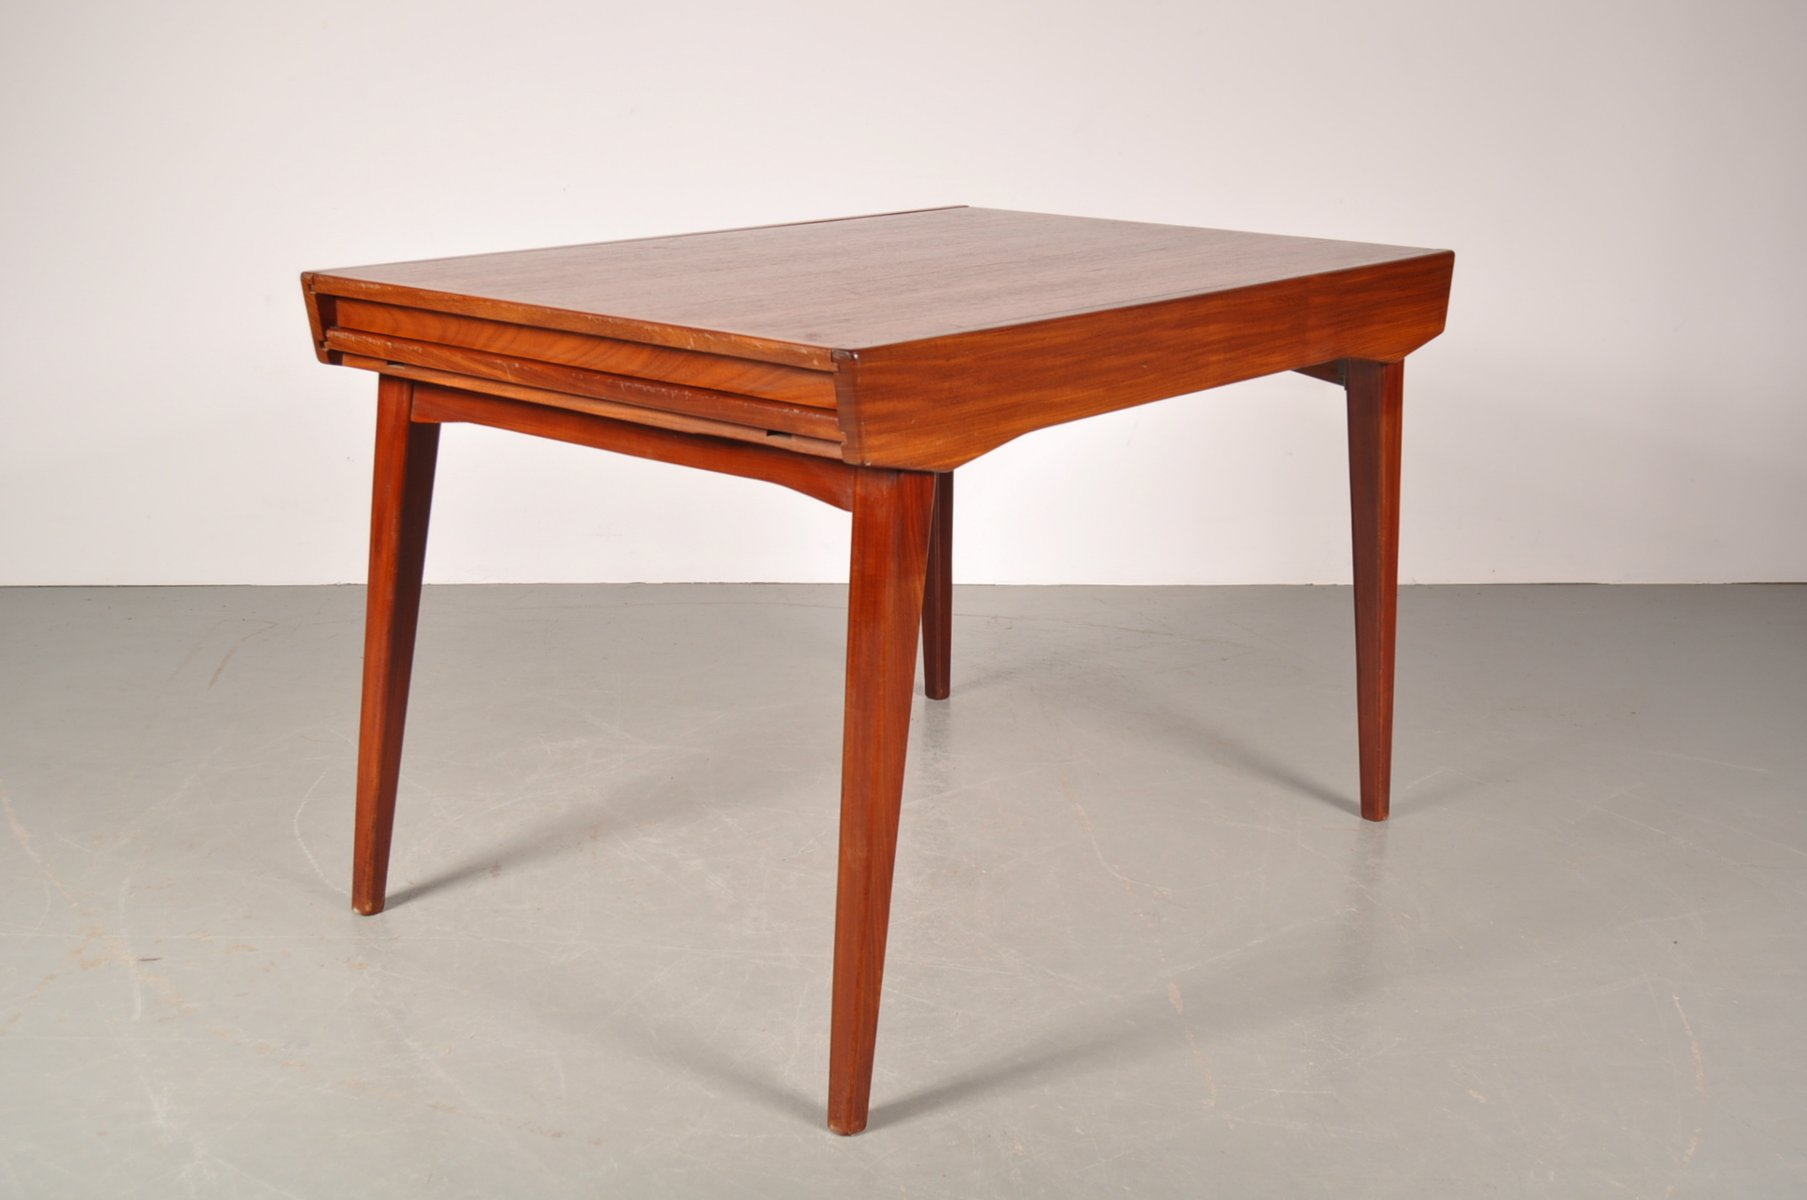 Teak Dining Table With Formica Extension Leaf By Louis Van